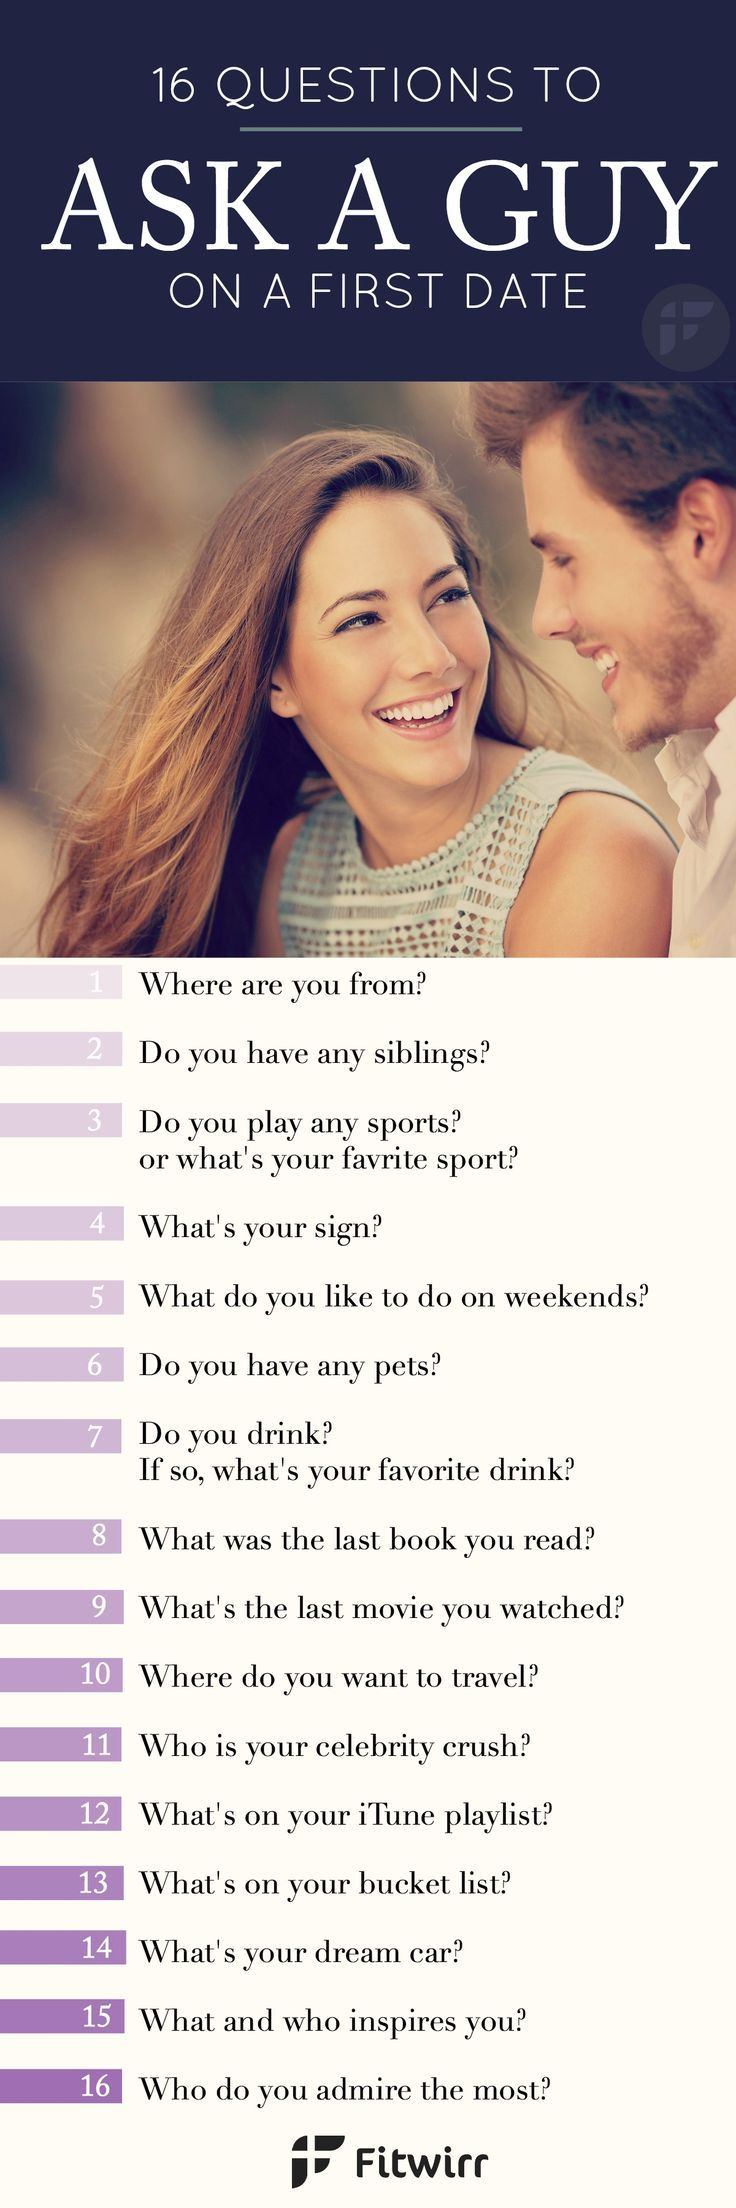 Questions to ask a guy on an online dating site